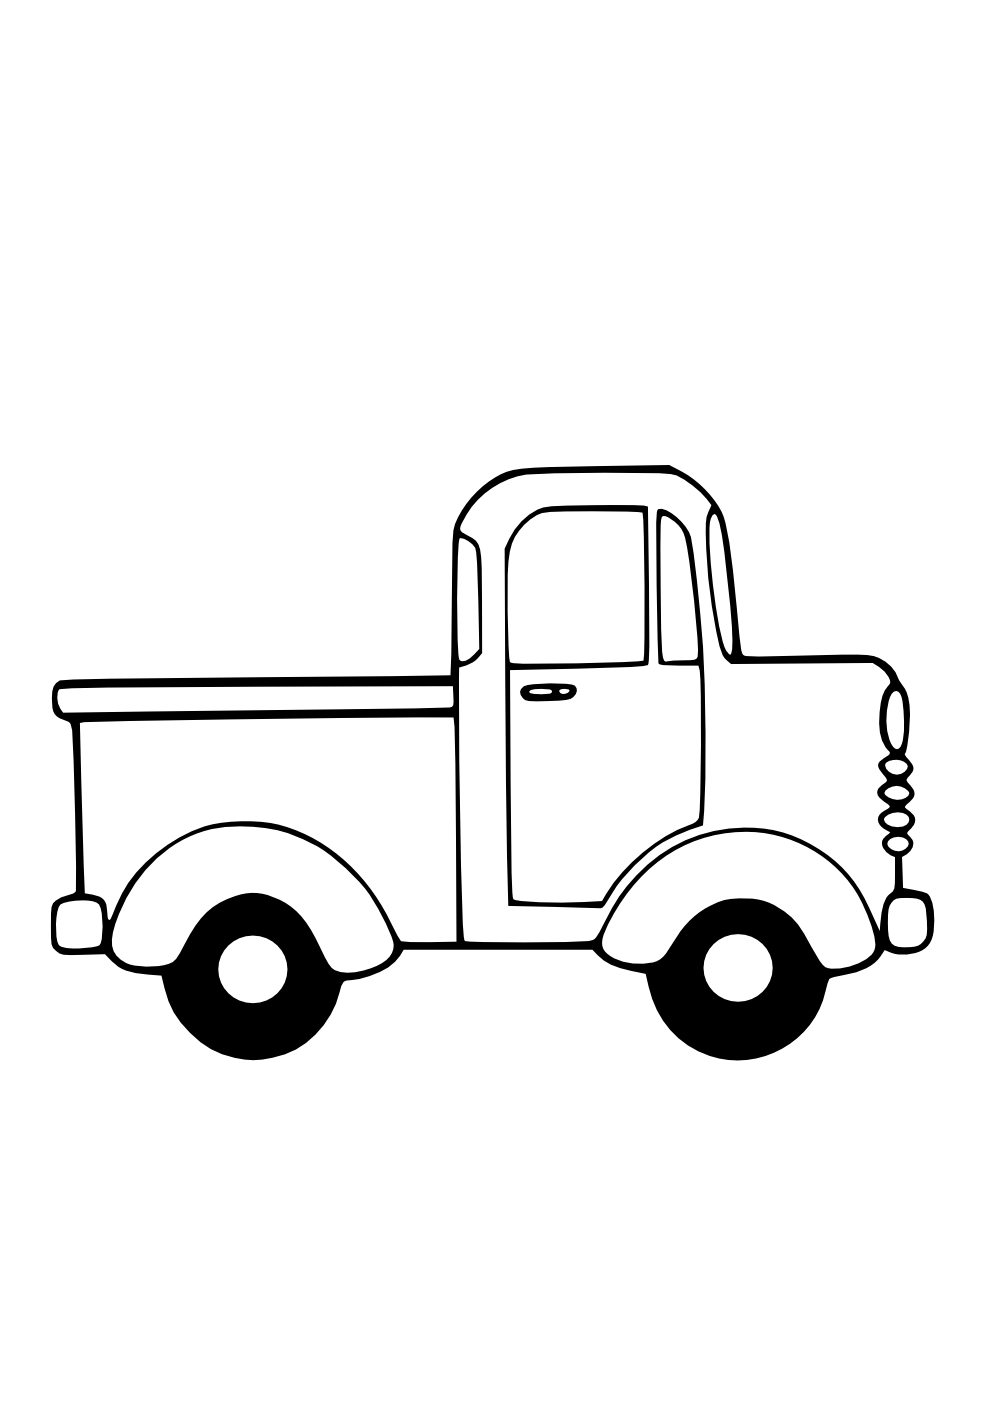 Working on car clipart clipart library library Truck Clipart Black And White | Clipart Panda - Free Clipart Images ... clipart library library